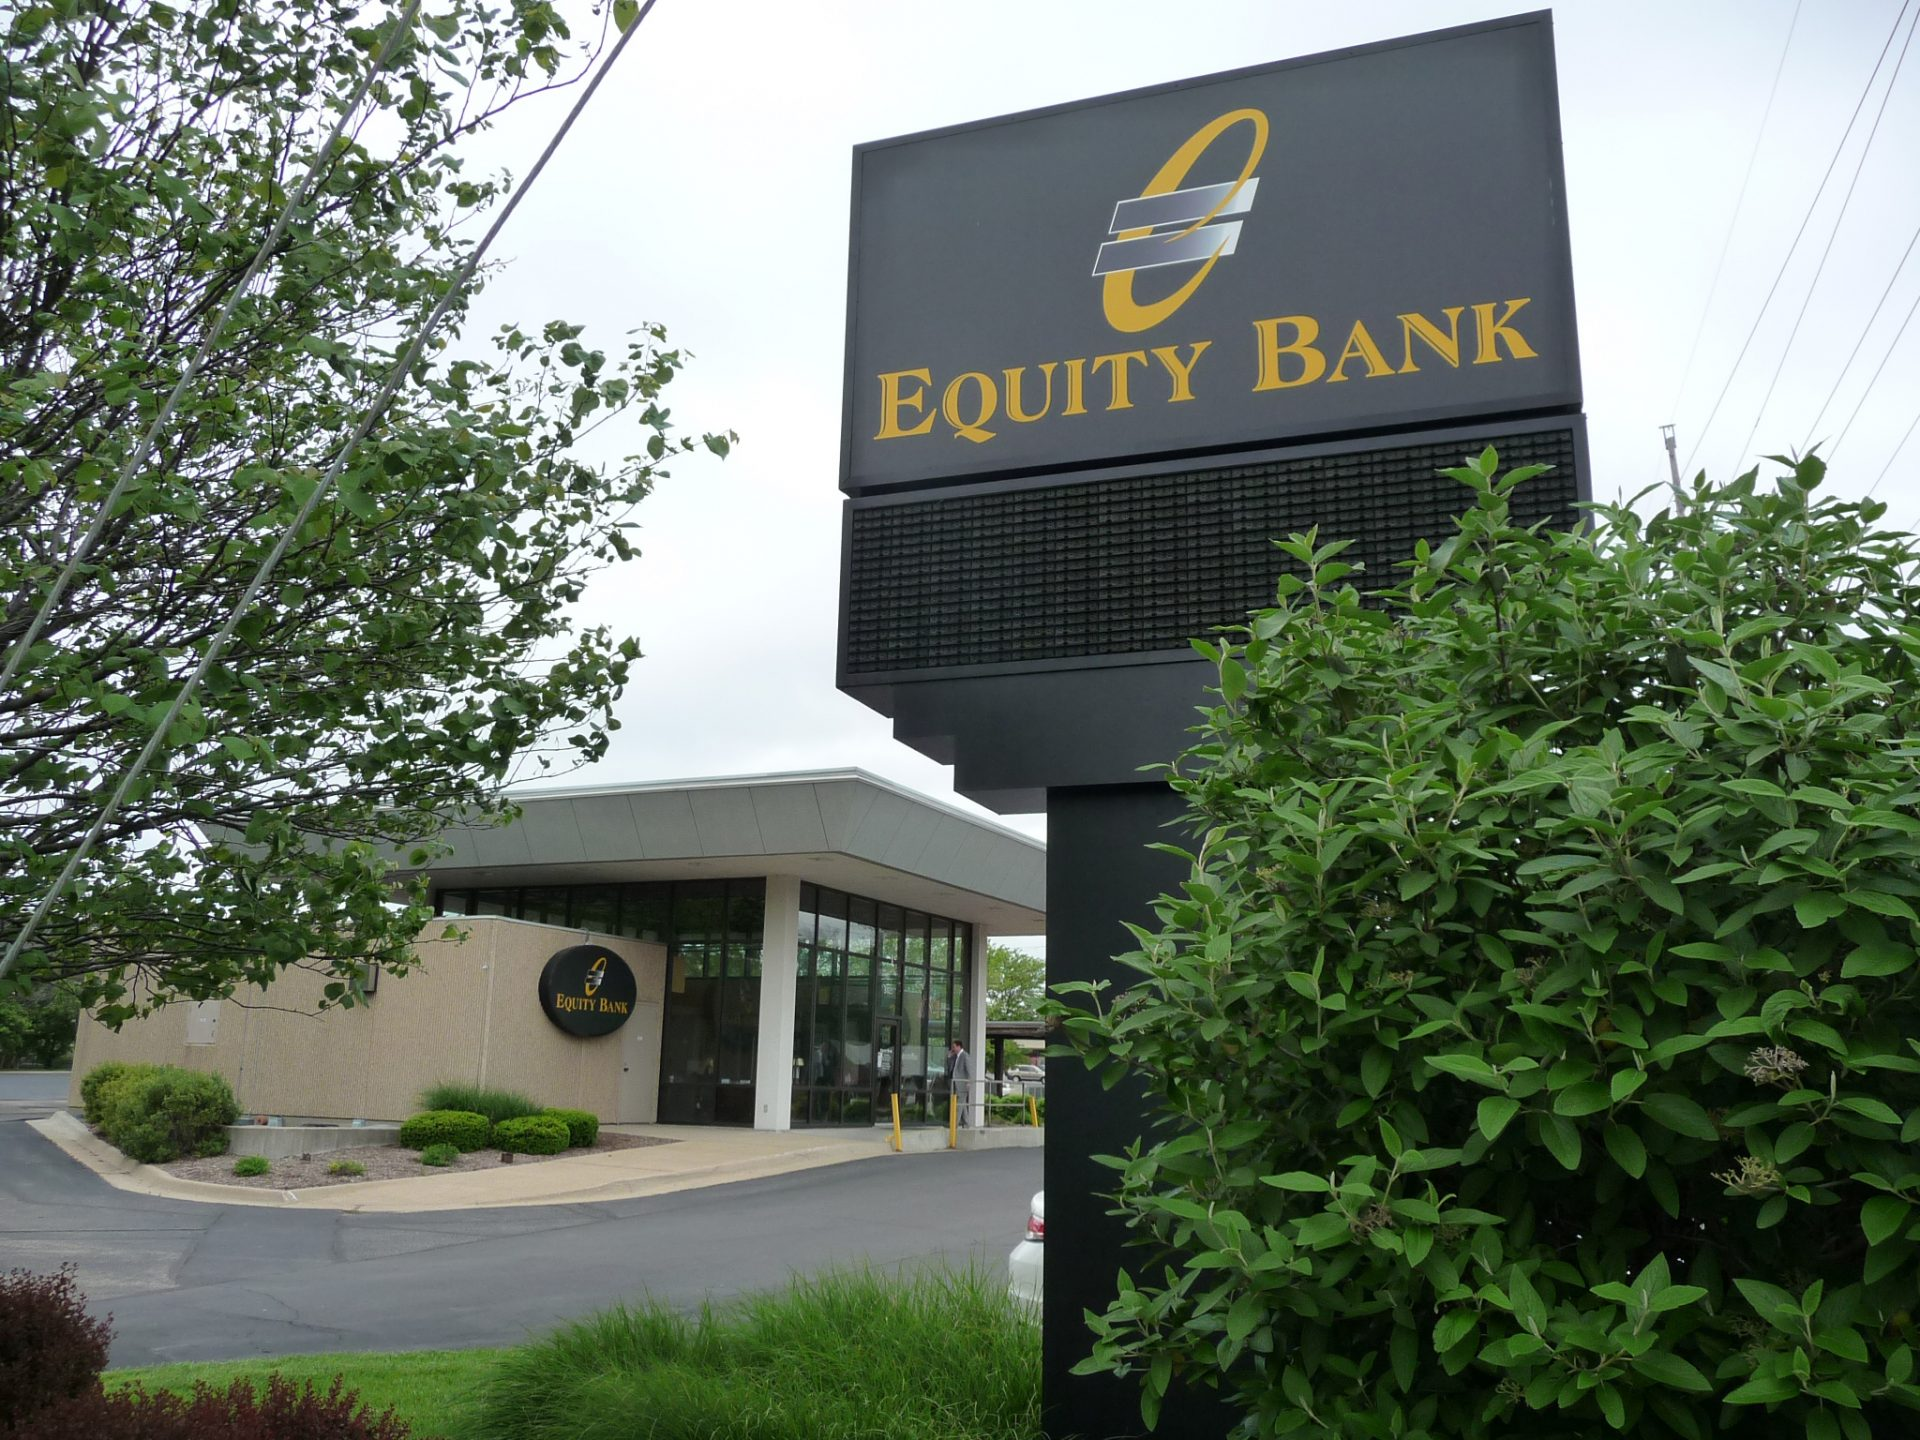 Equity Bank Topeka Gage branch exterior.